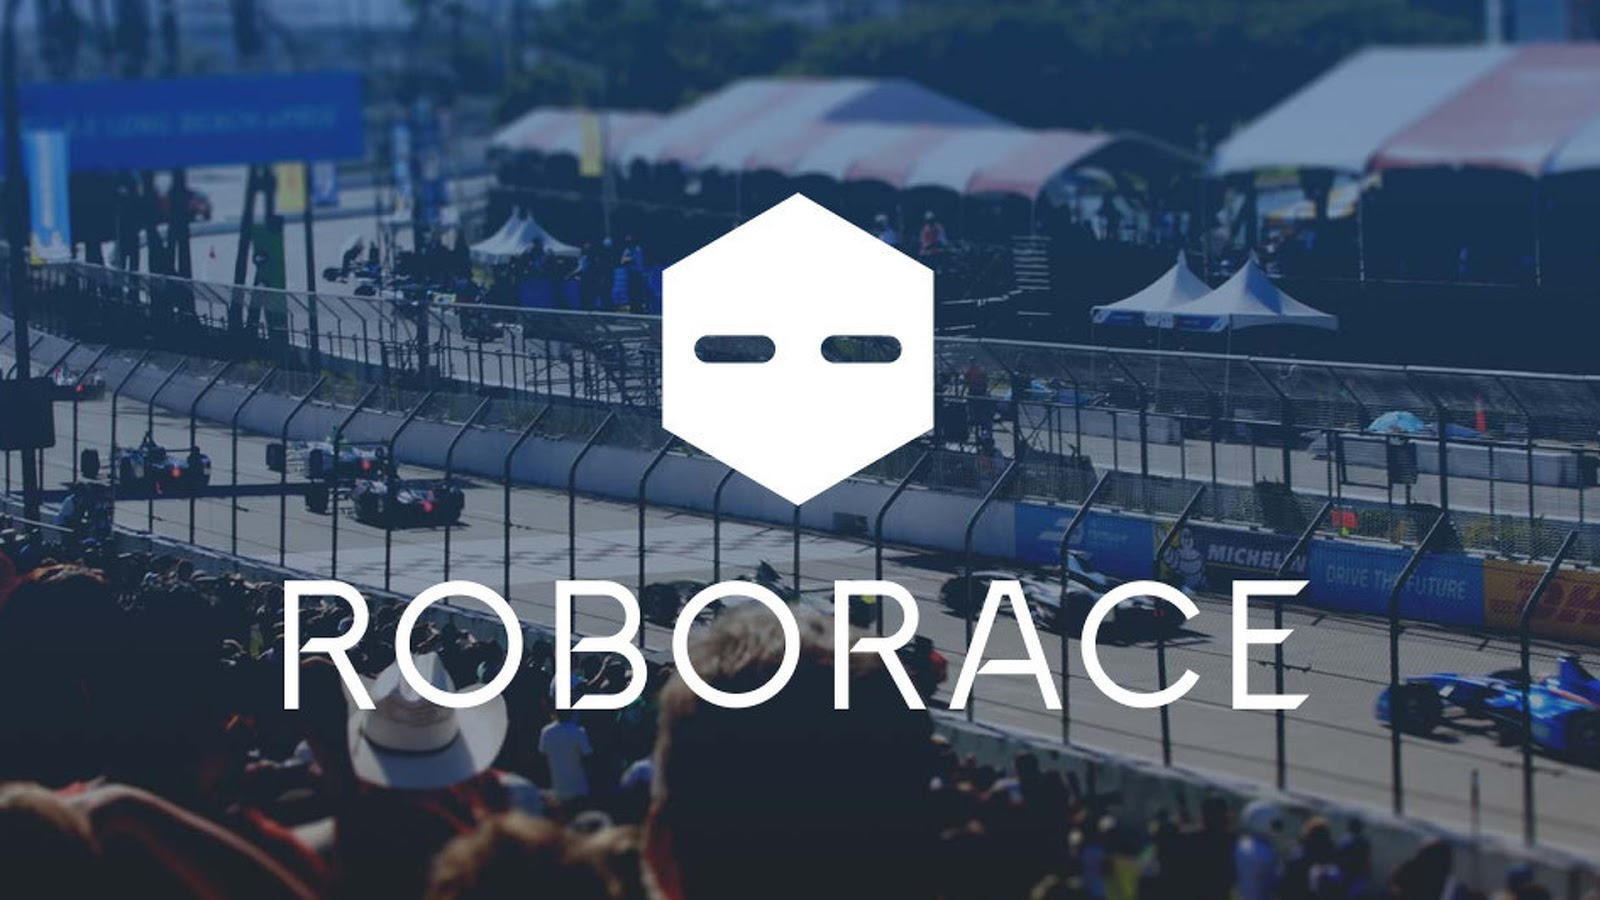 Roborace: The race of driverless cars Image credit: motor1.com